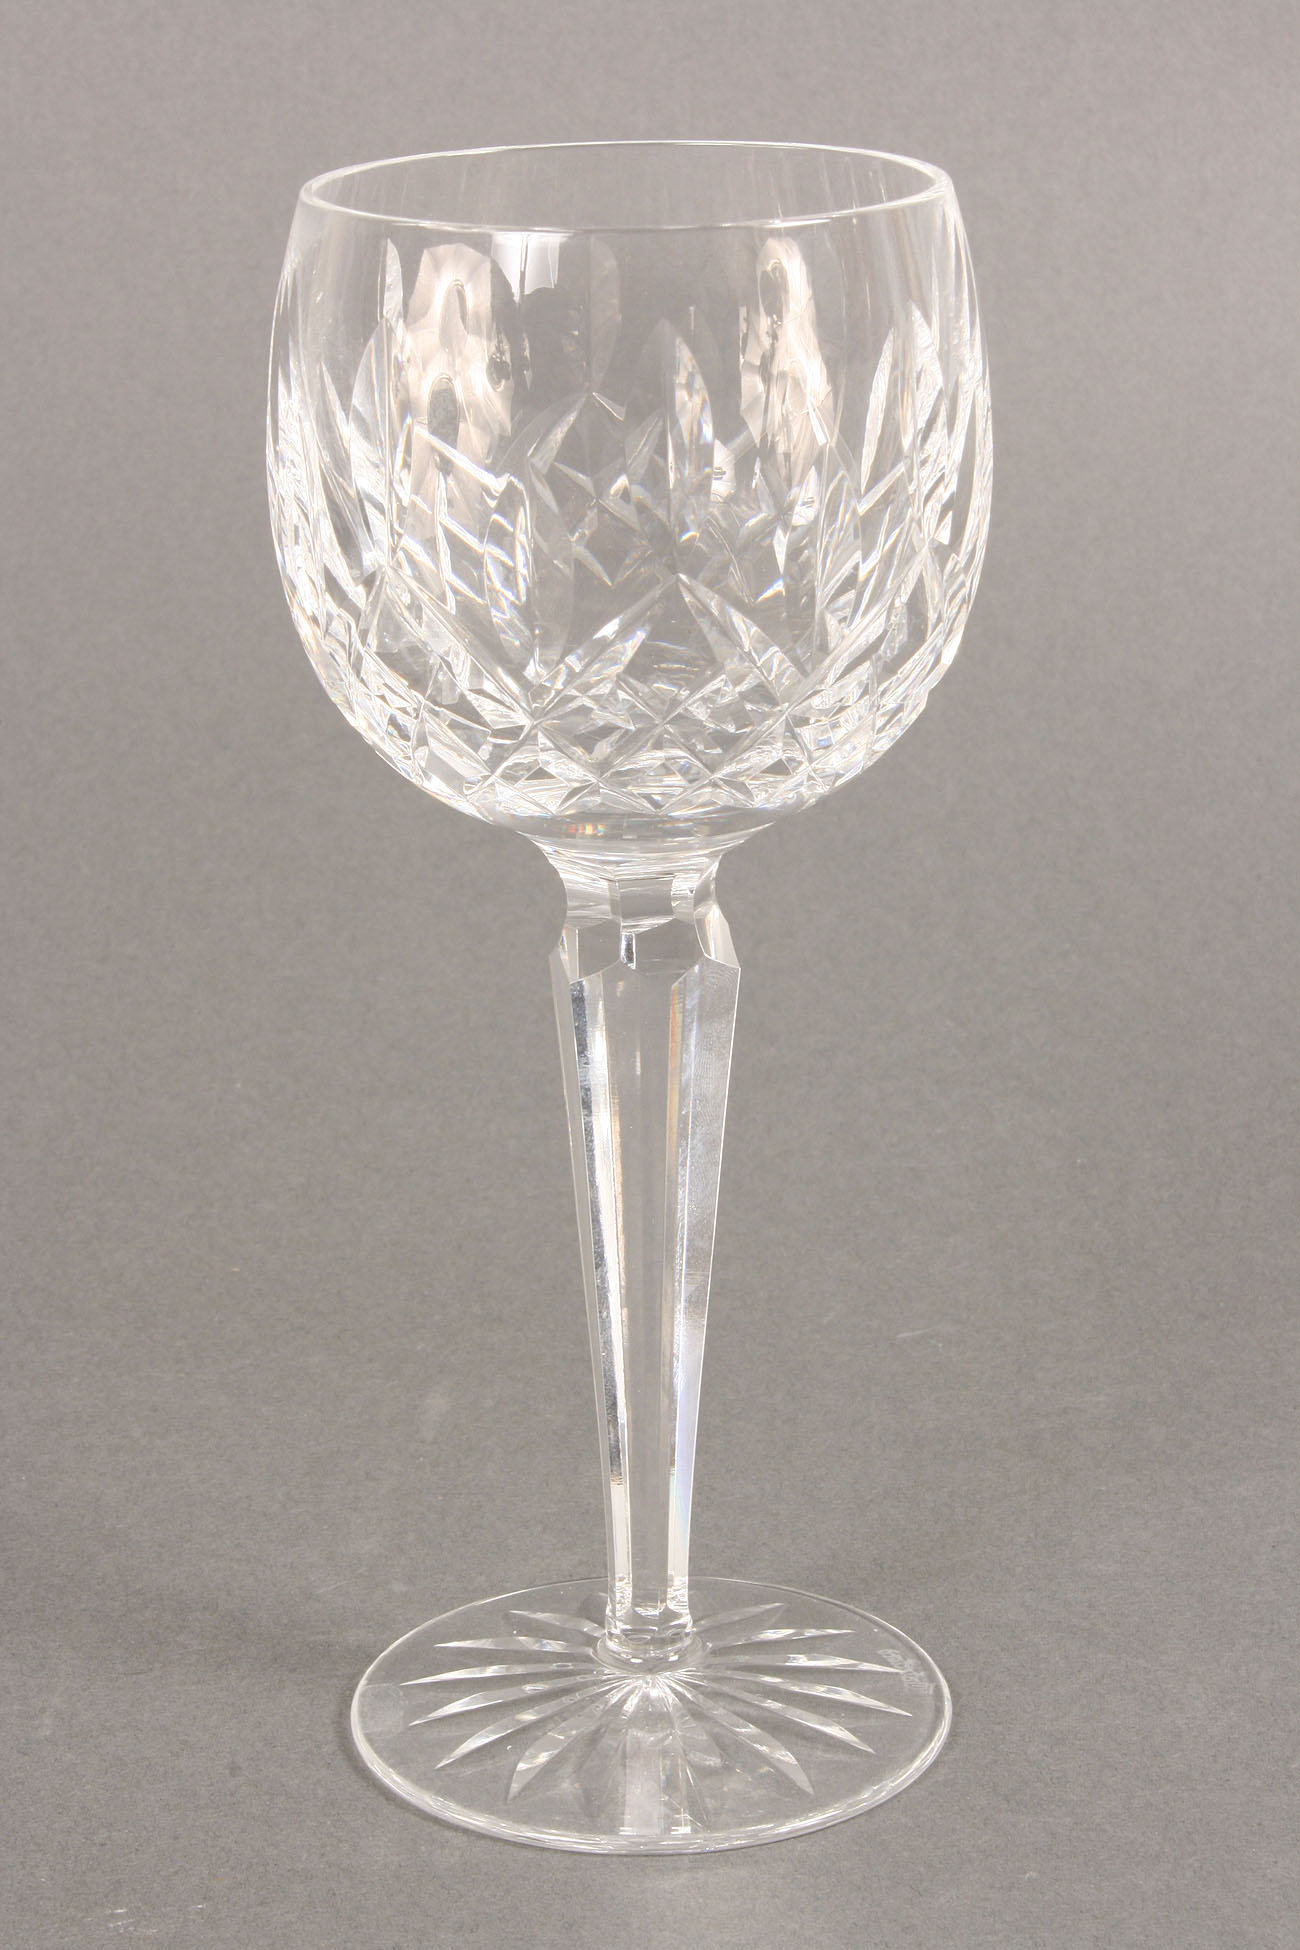 Amazing Waterford Crystal Patterns For Dining Furniture Ideas With Waterford Crystal Glass Patterns